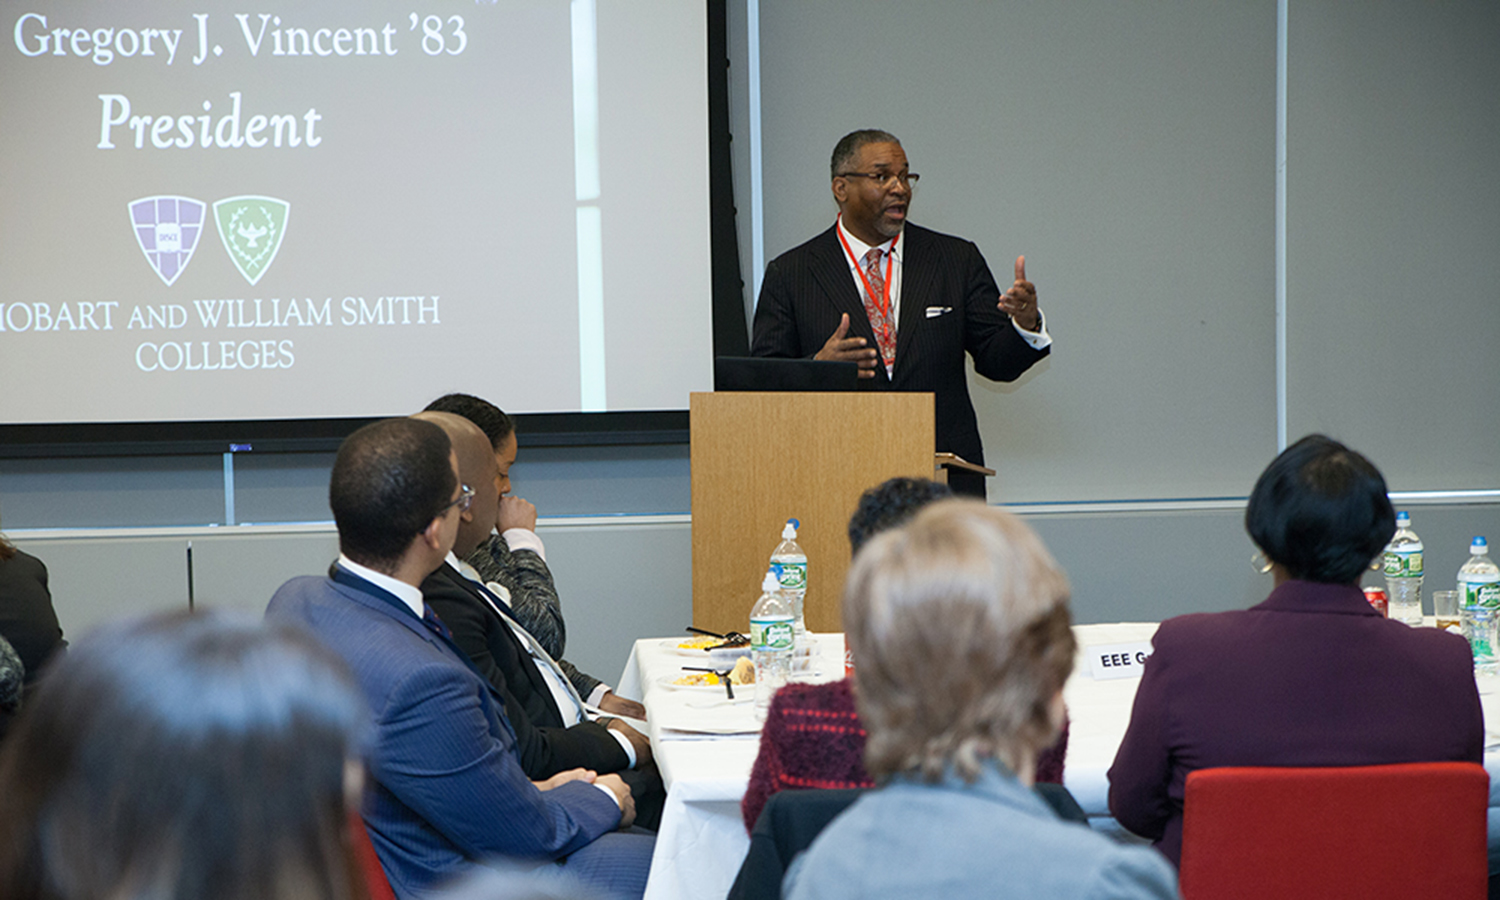 President Gregory J. Vincent '83 delivers the keynote address at African American Affinity Group's celebratory Black History luncheon in Newark, New Jersey.